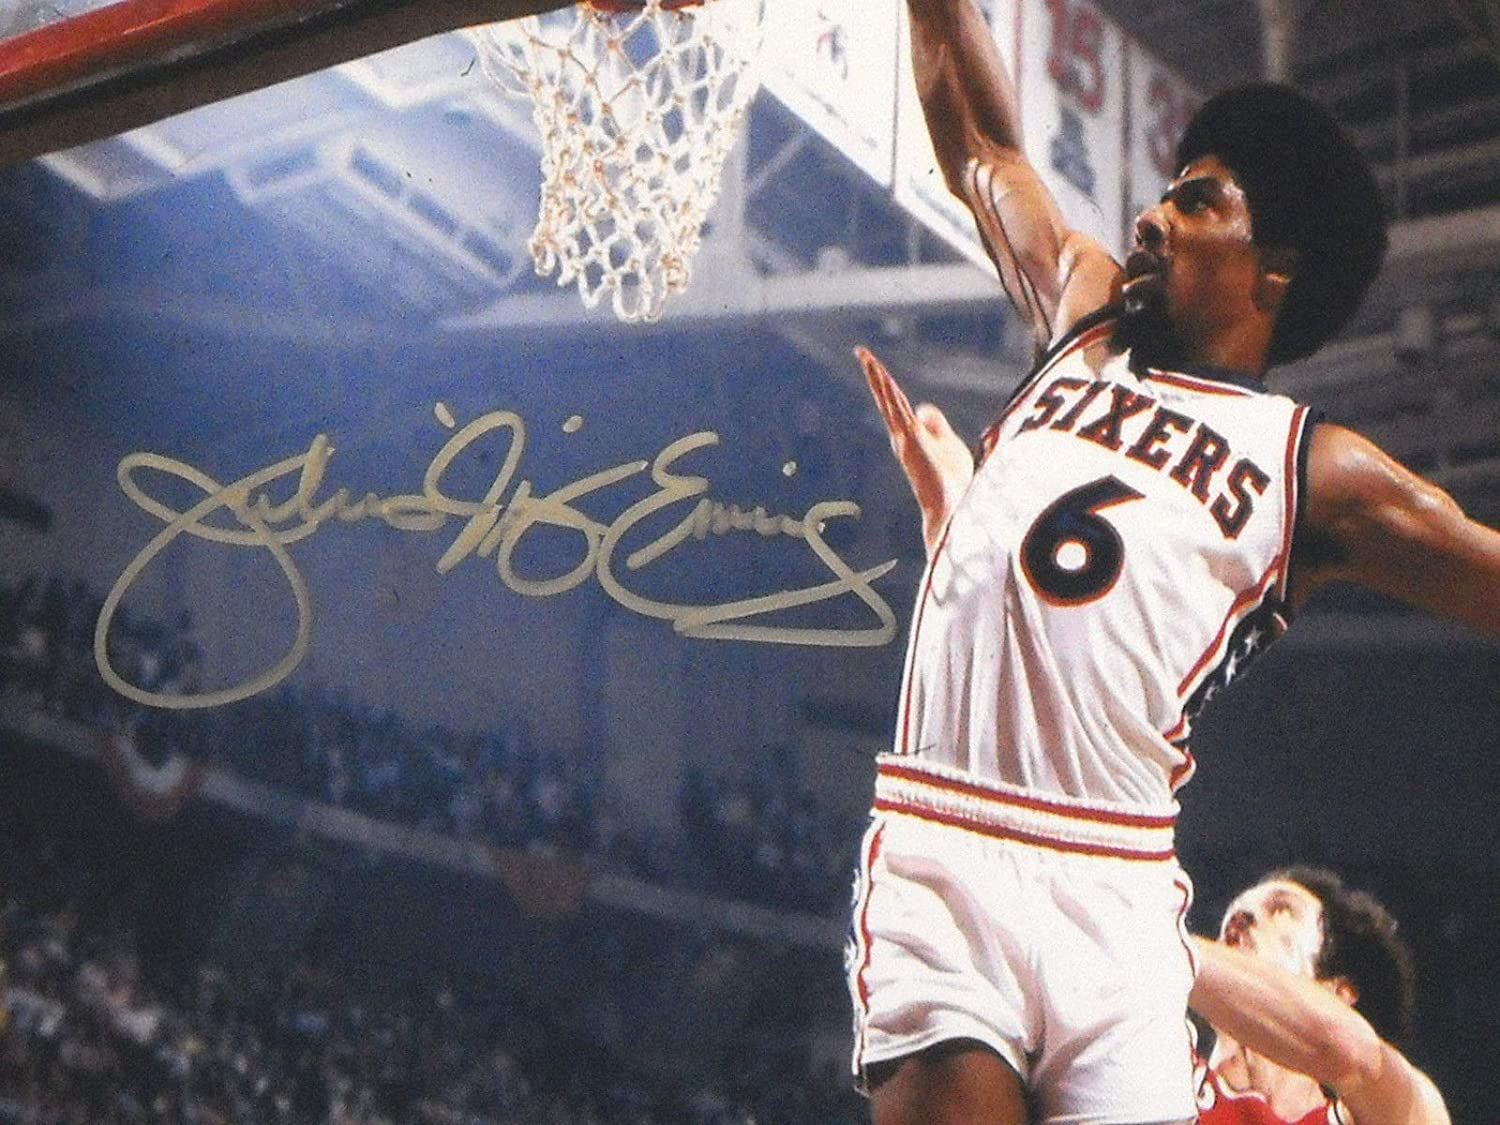 cacc61be306 JULIUS ERVING AUTOGRAPHED PHILADELPHIA 76ERS 16X20 PHOTO AASH DR J SIXERS  at Amazon s Sports Collectibles Store